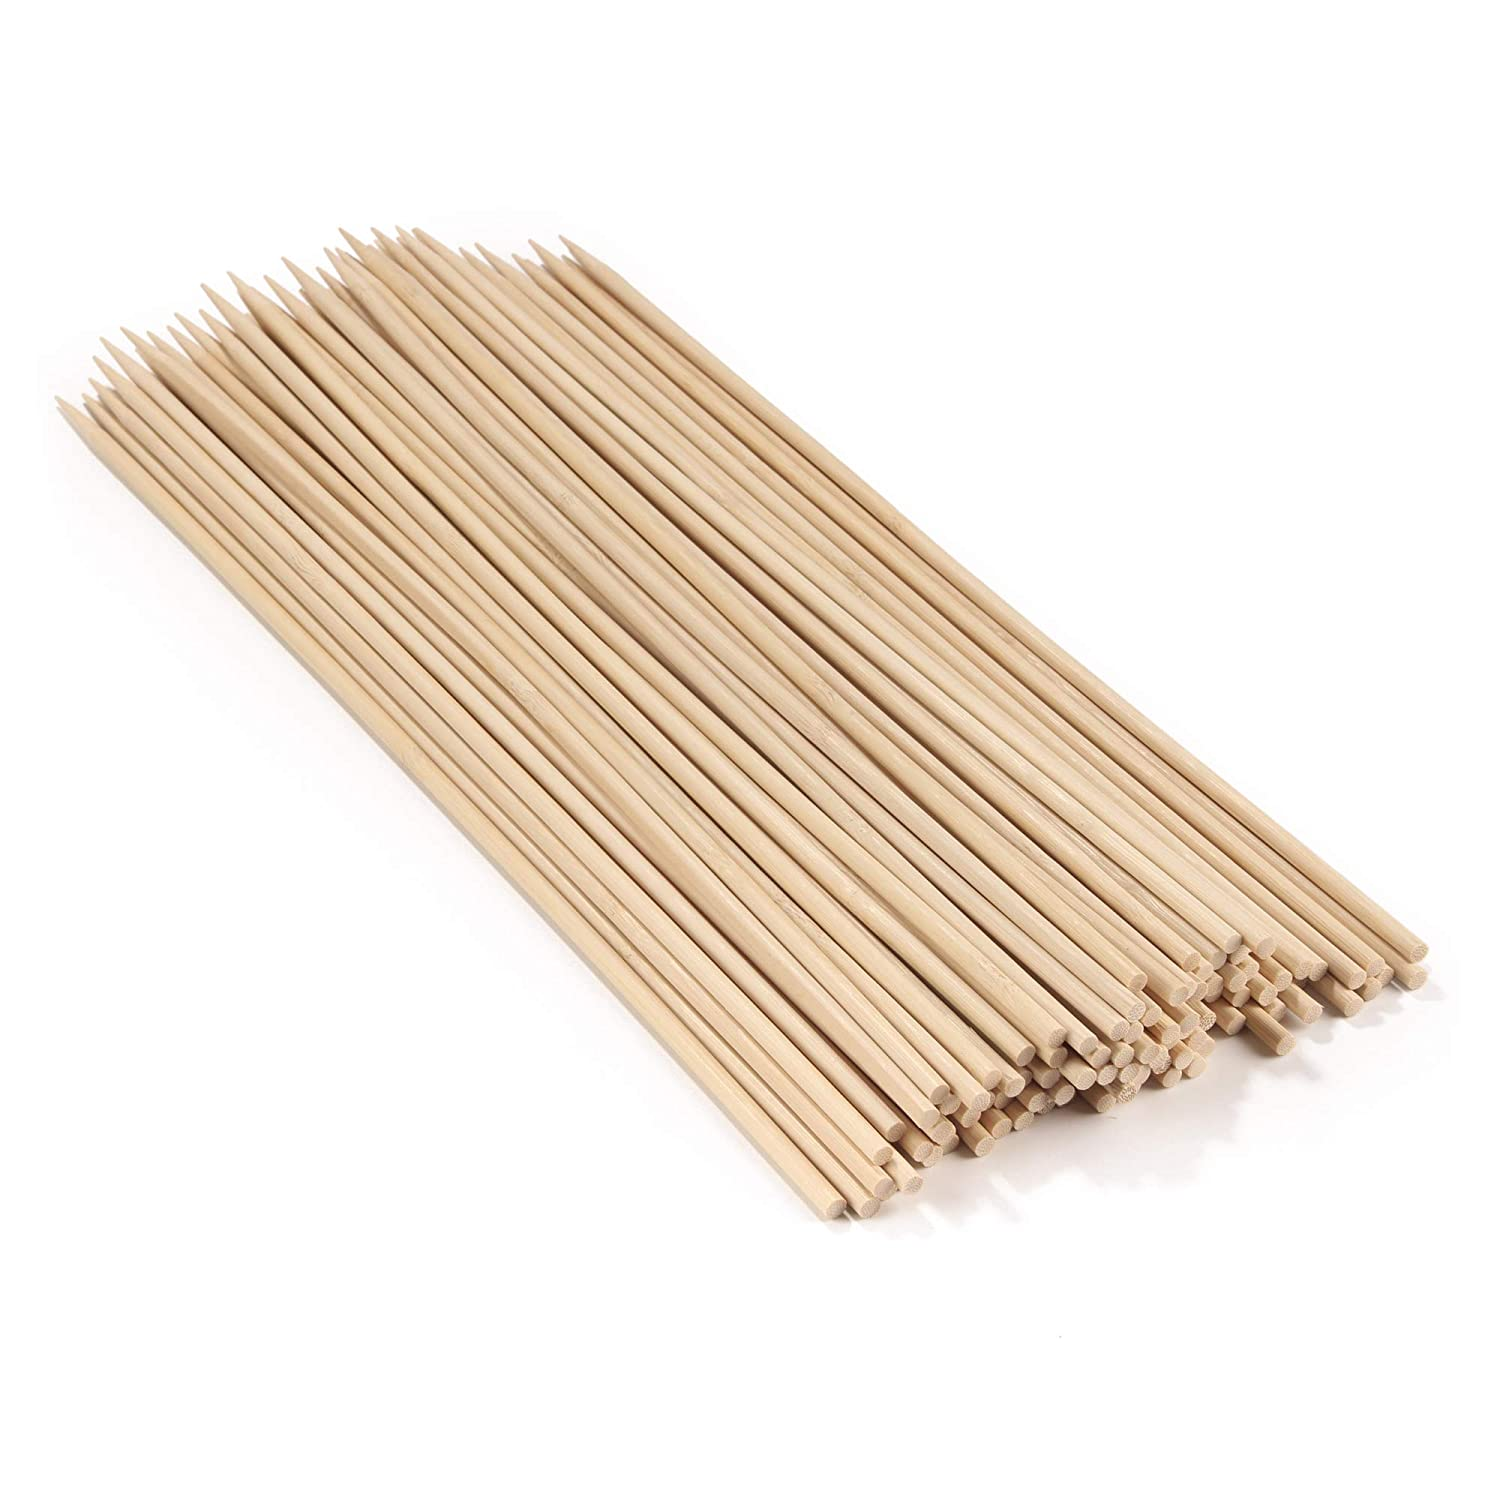 BambooMN 18 Long x 5mm Thick Sharp Point Bamboo Kabab Satay BBQ Skewers Party Supplies 300 Pieces 6955114903409a